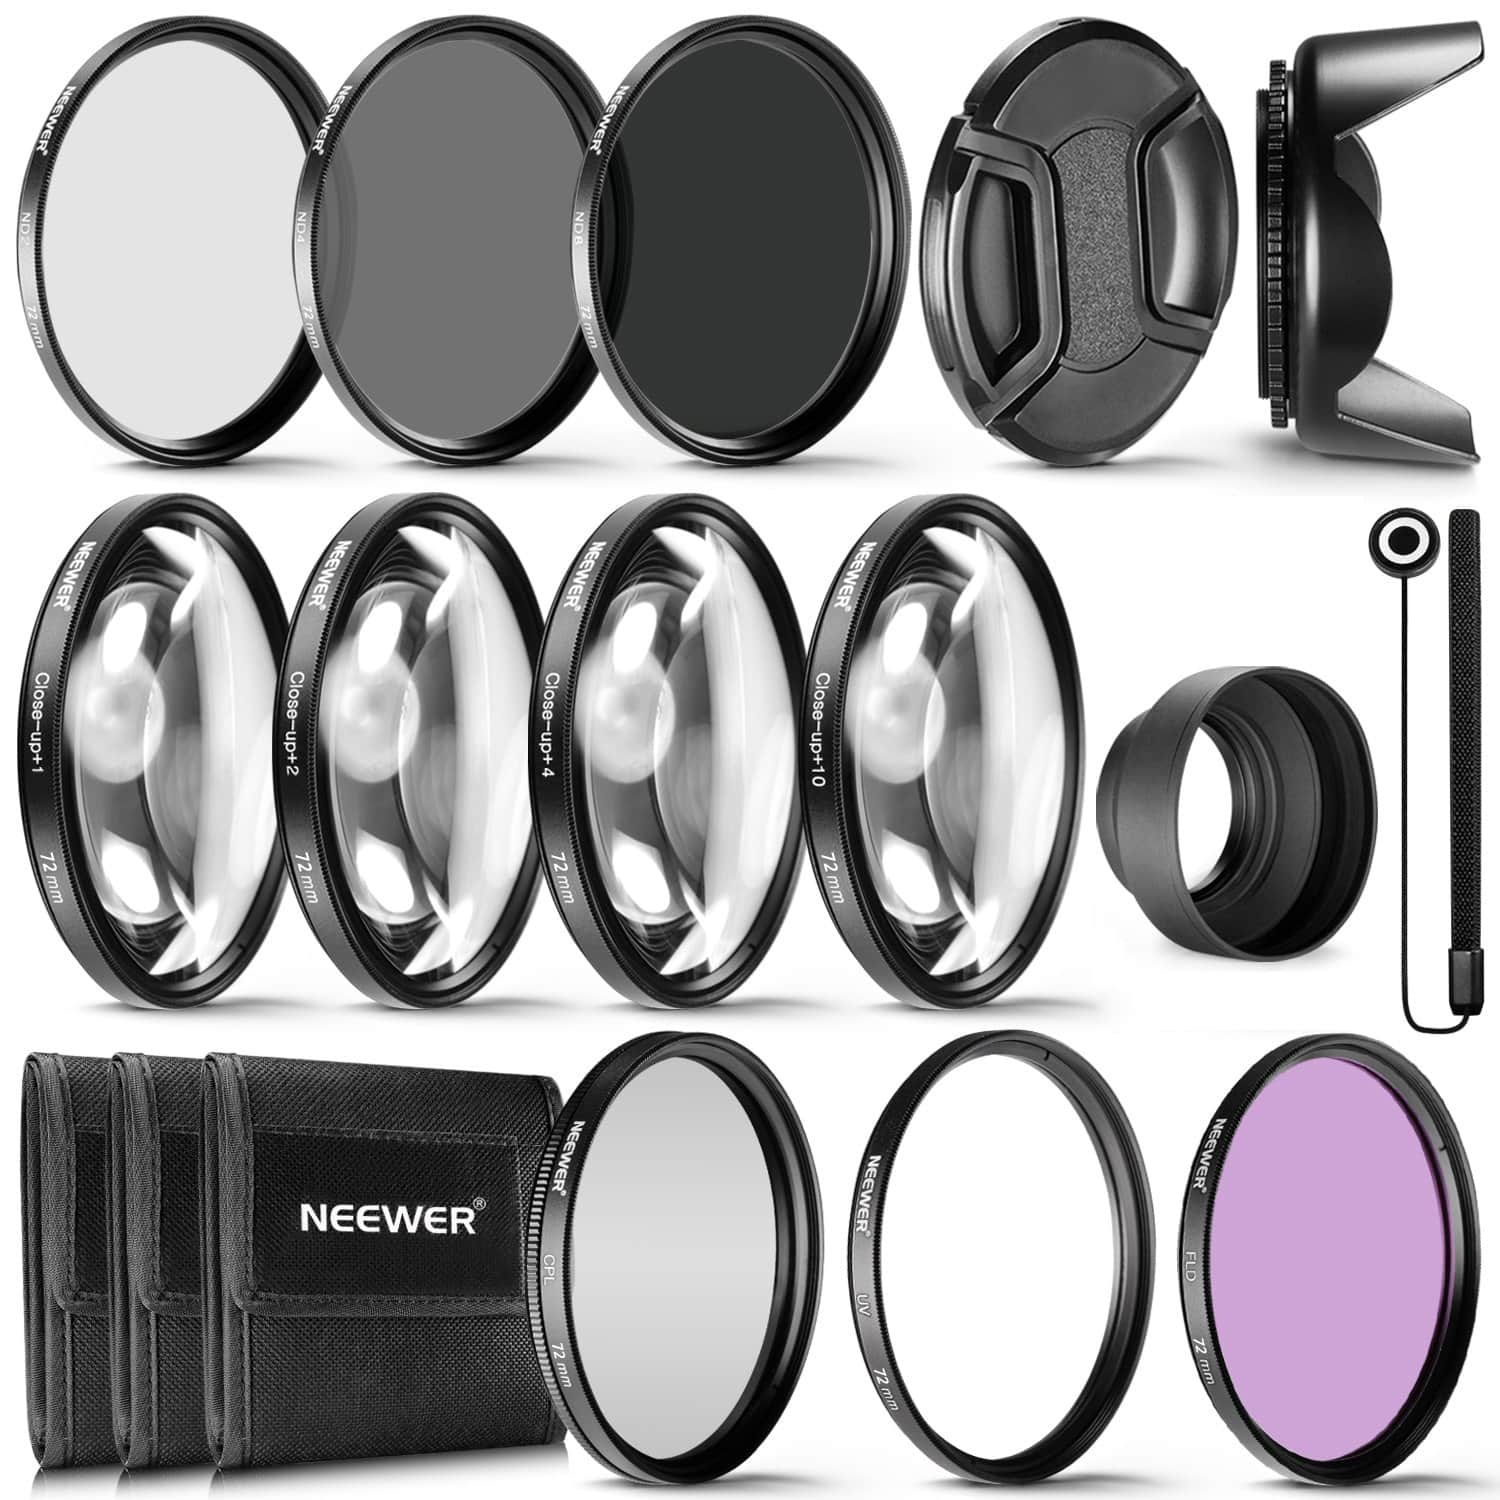 Neewer 72MM Complete Lens Filter Accessory Kit - $22.05 + Free Shipping